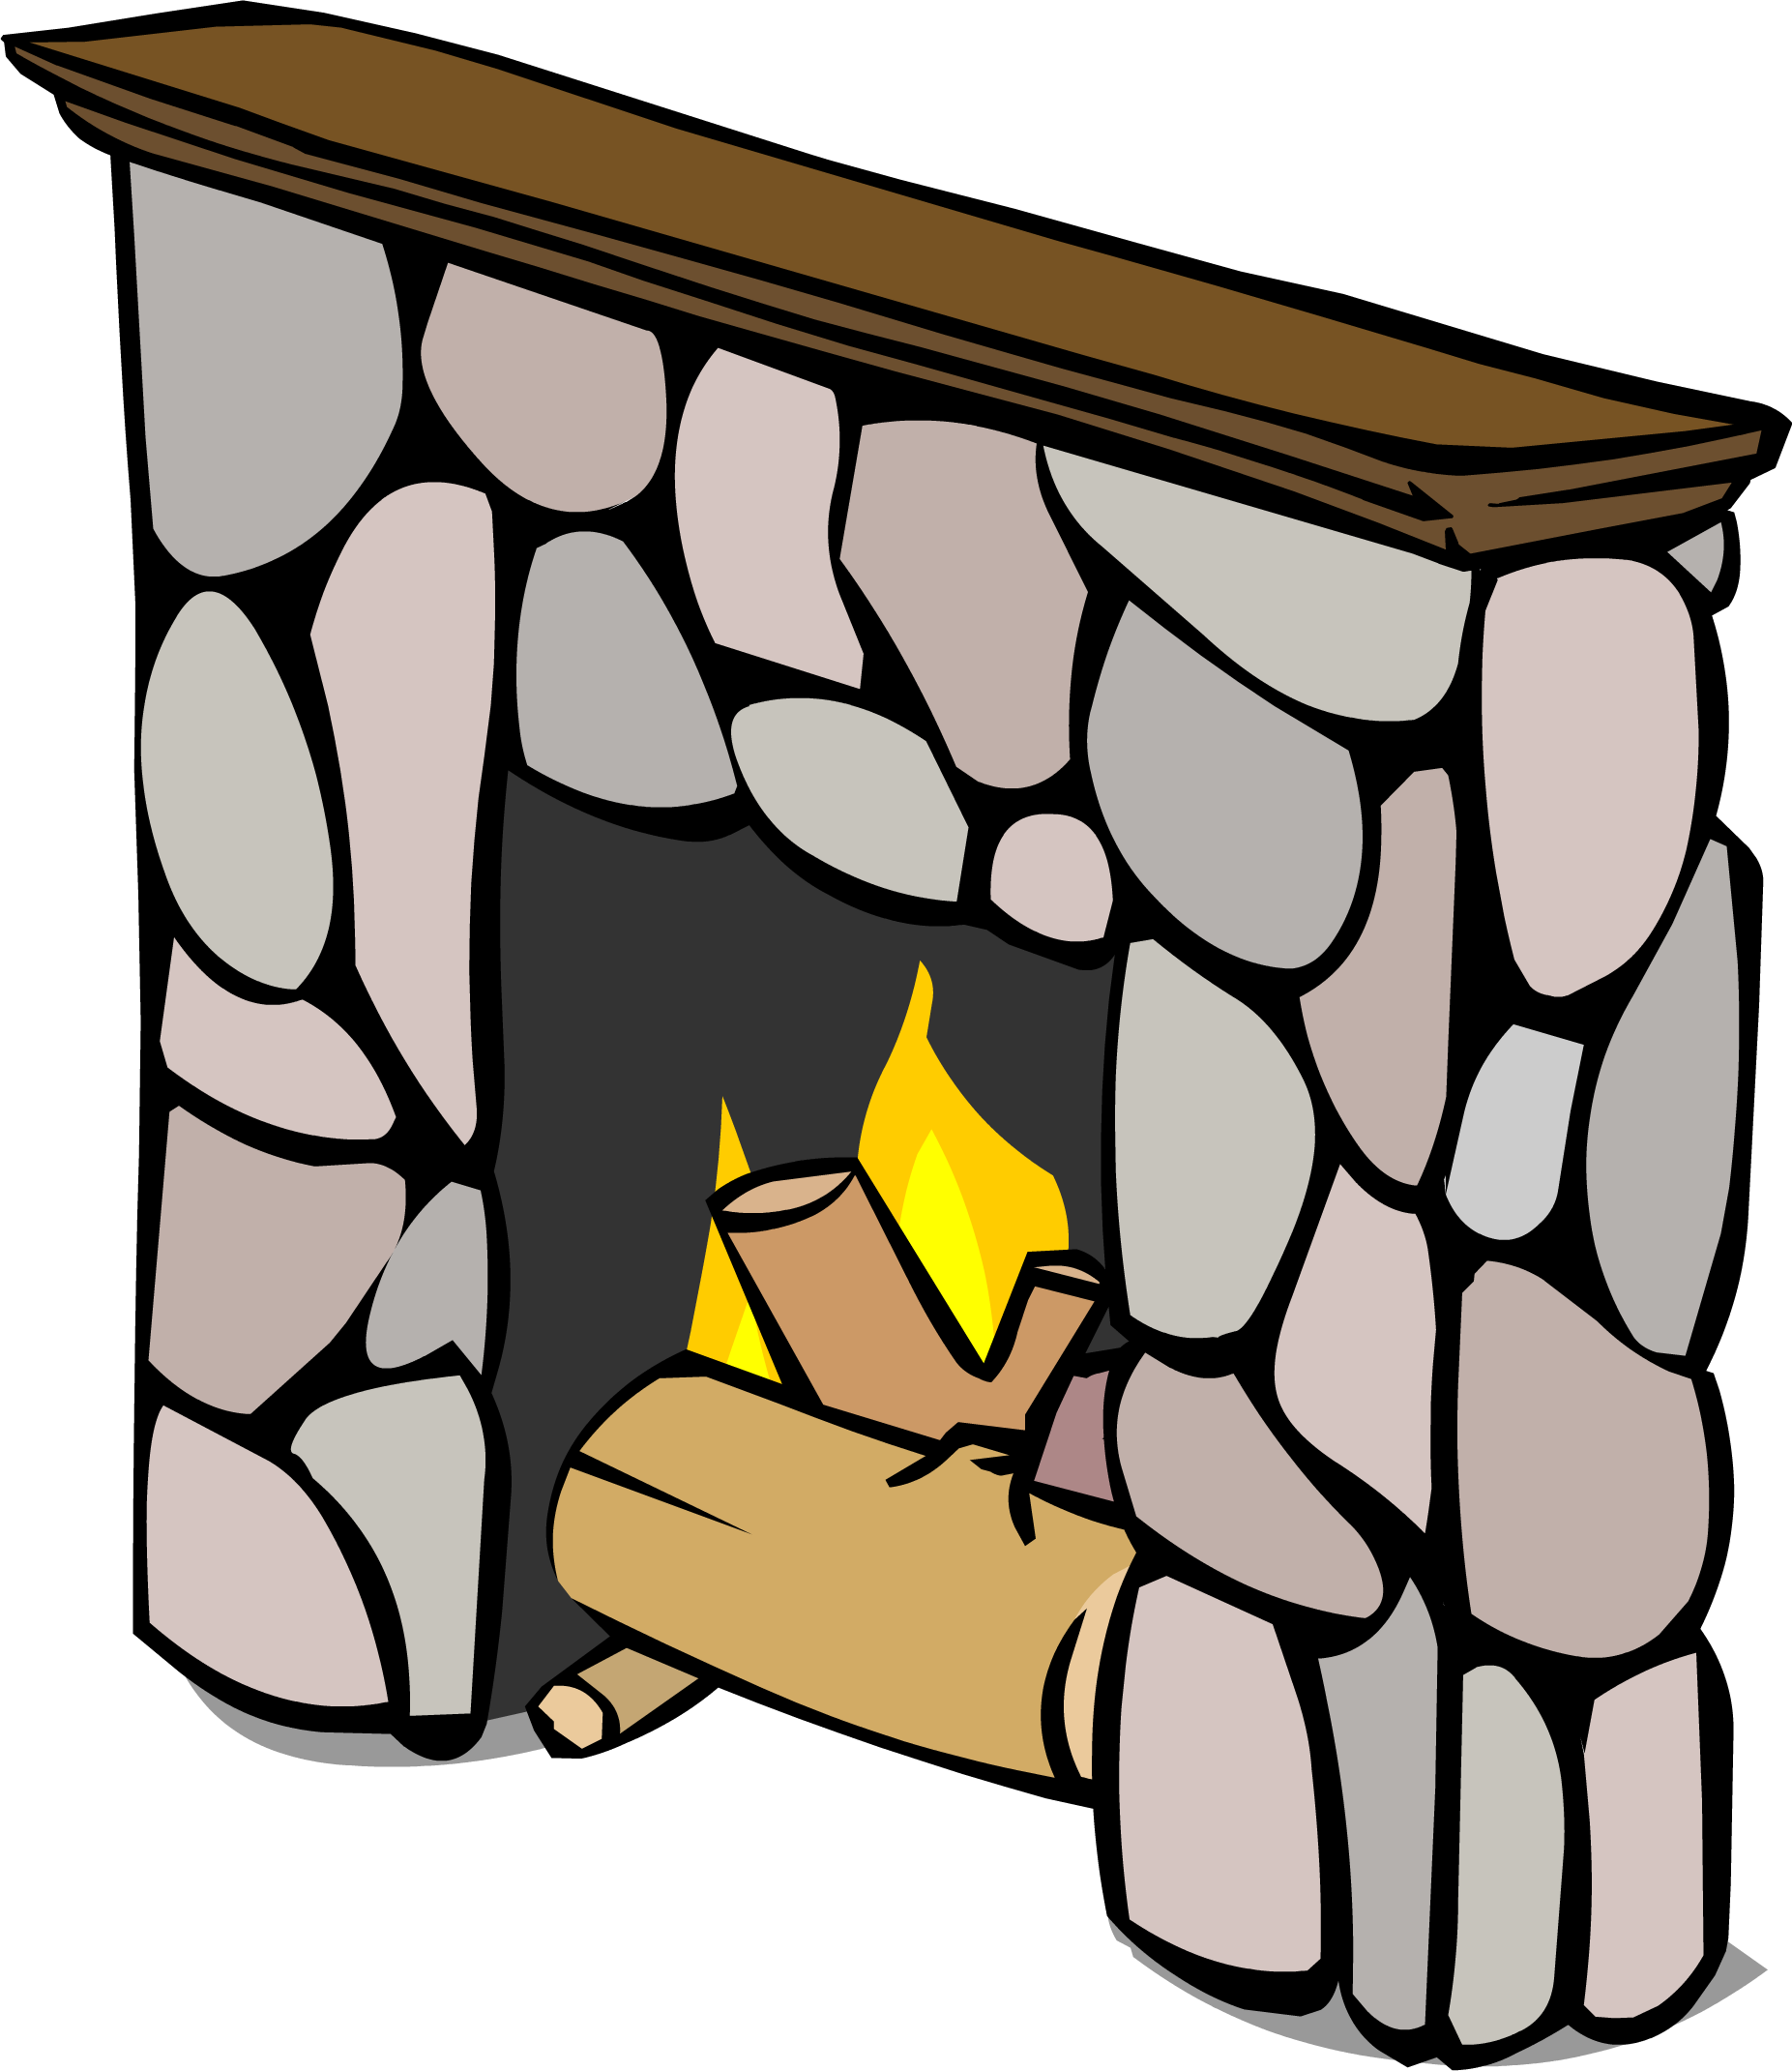 Image sprite png club. Fireplace clipart transparent